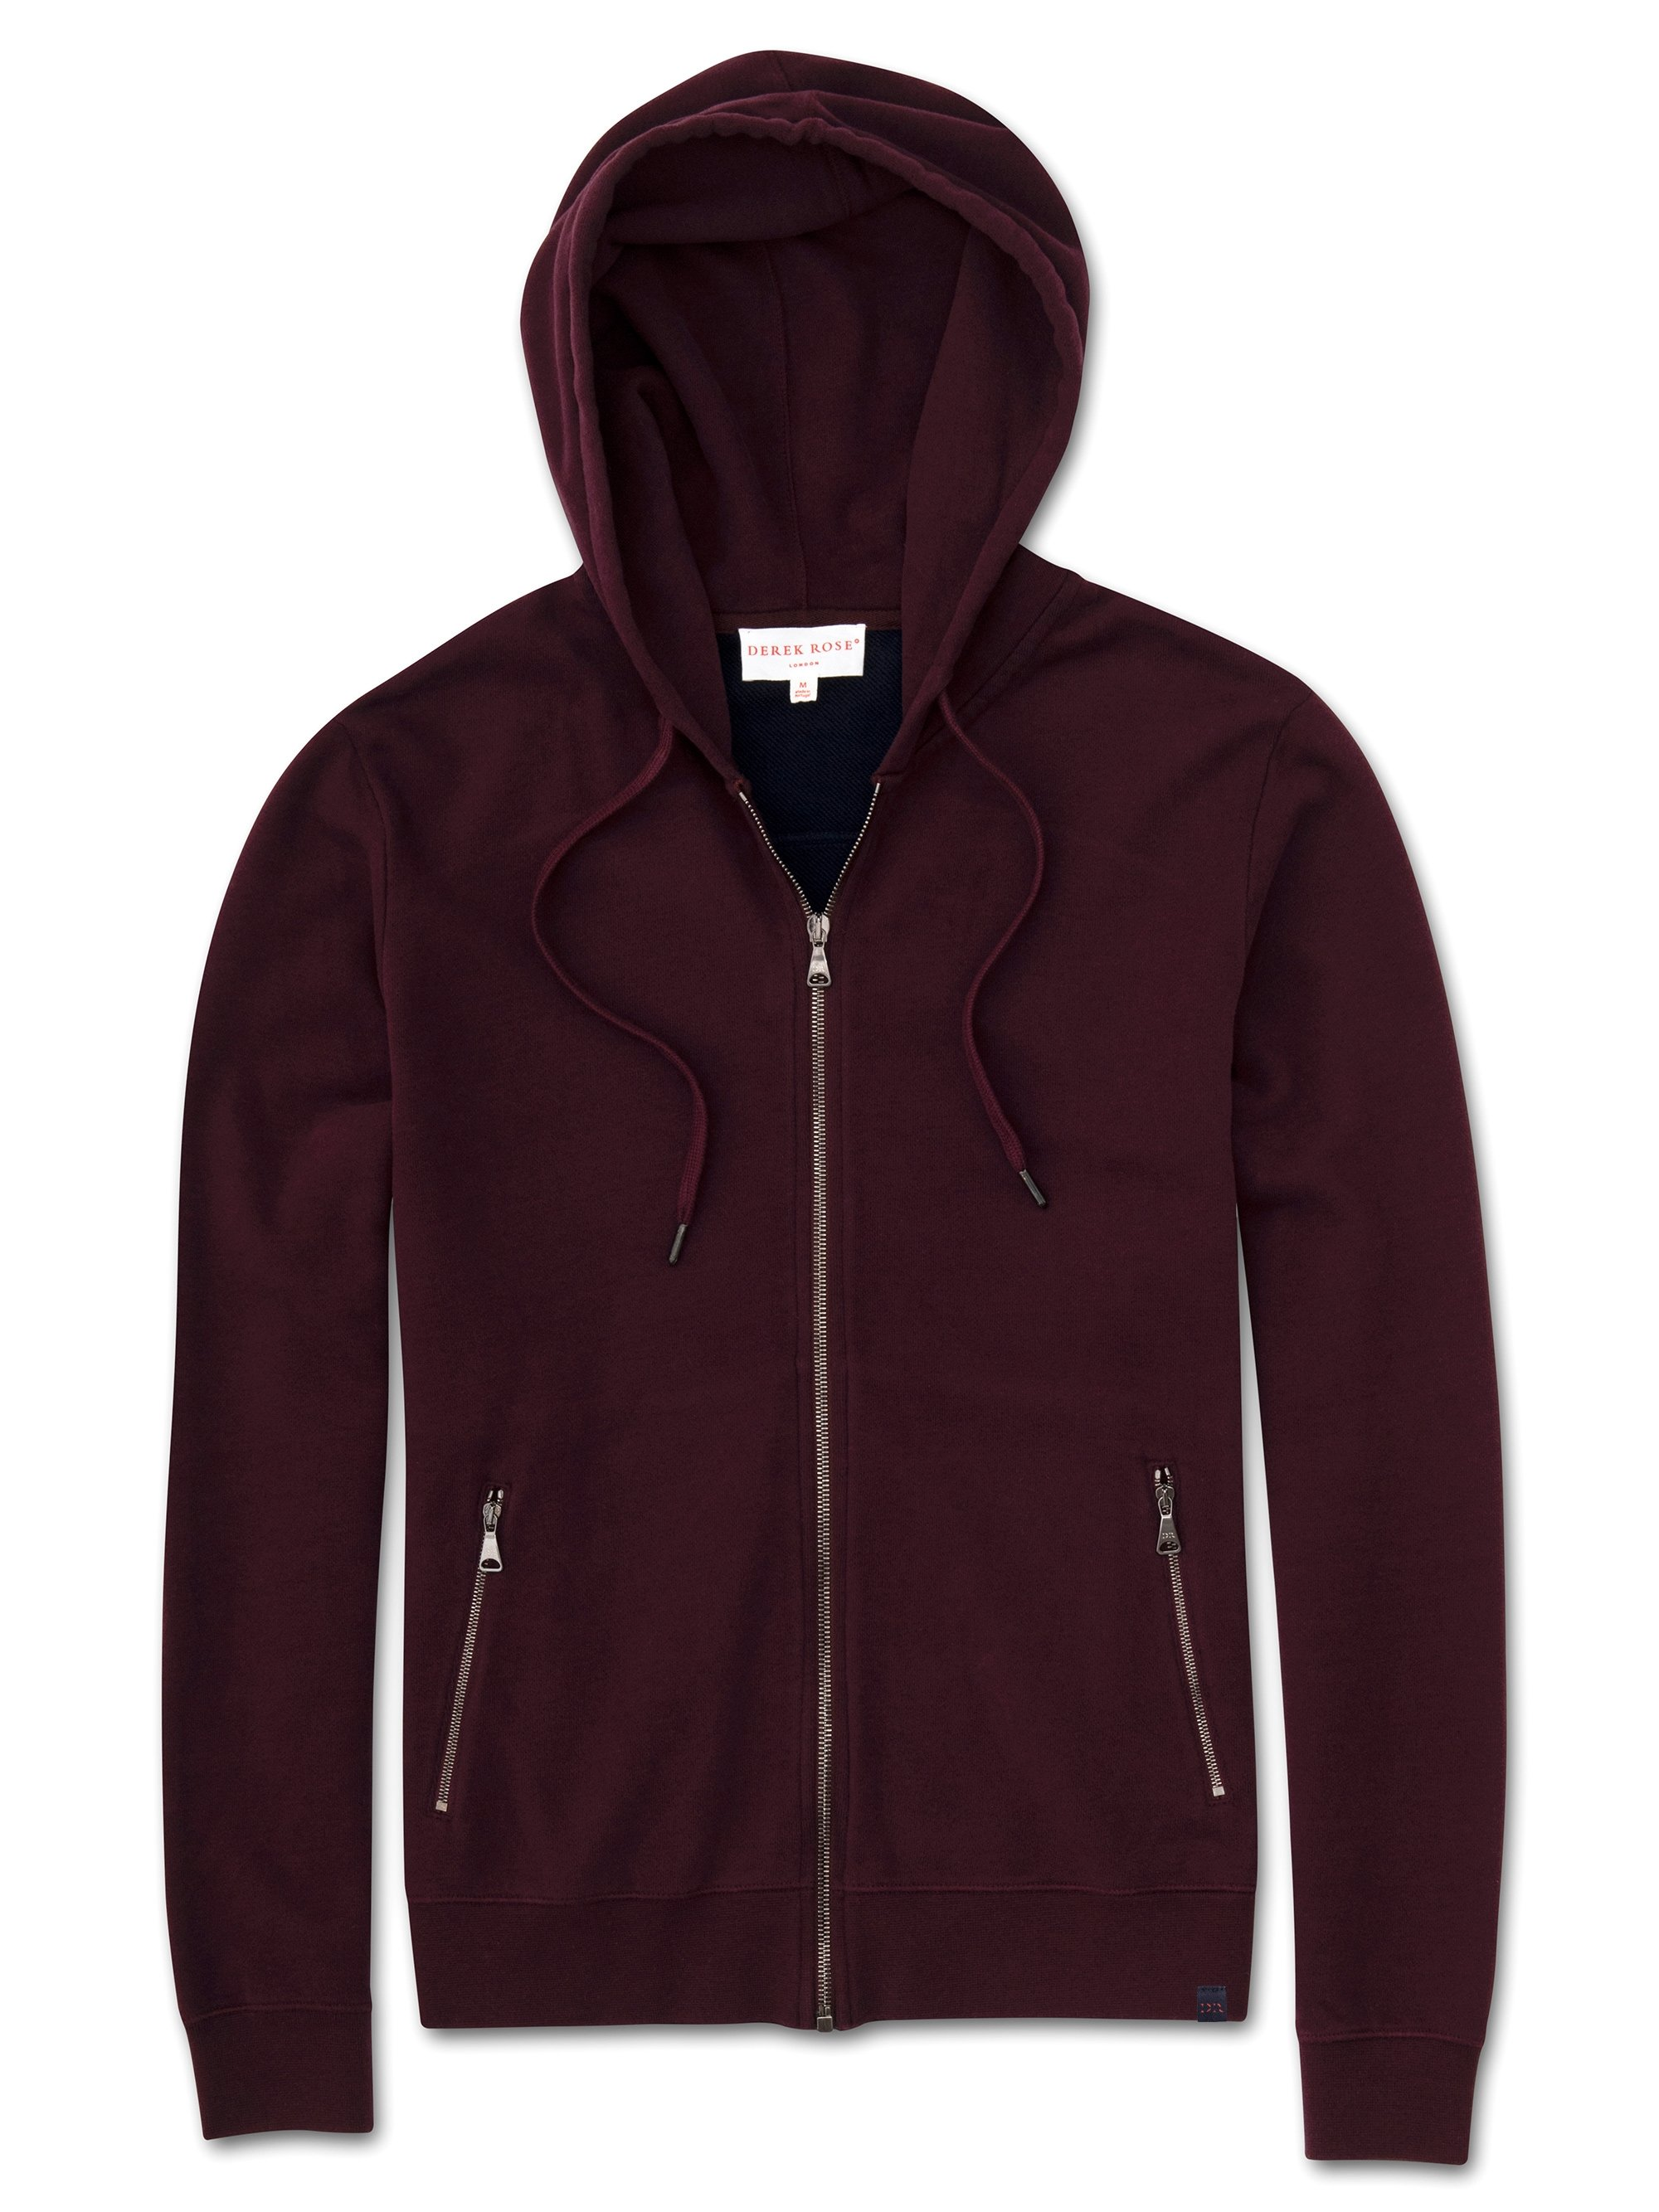 Men's Hoodie Devon 2 Loopback Cotton Burgundy